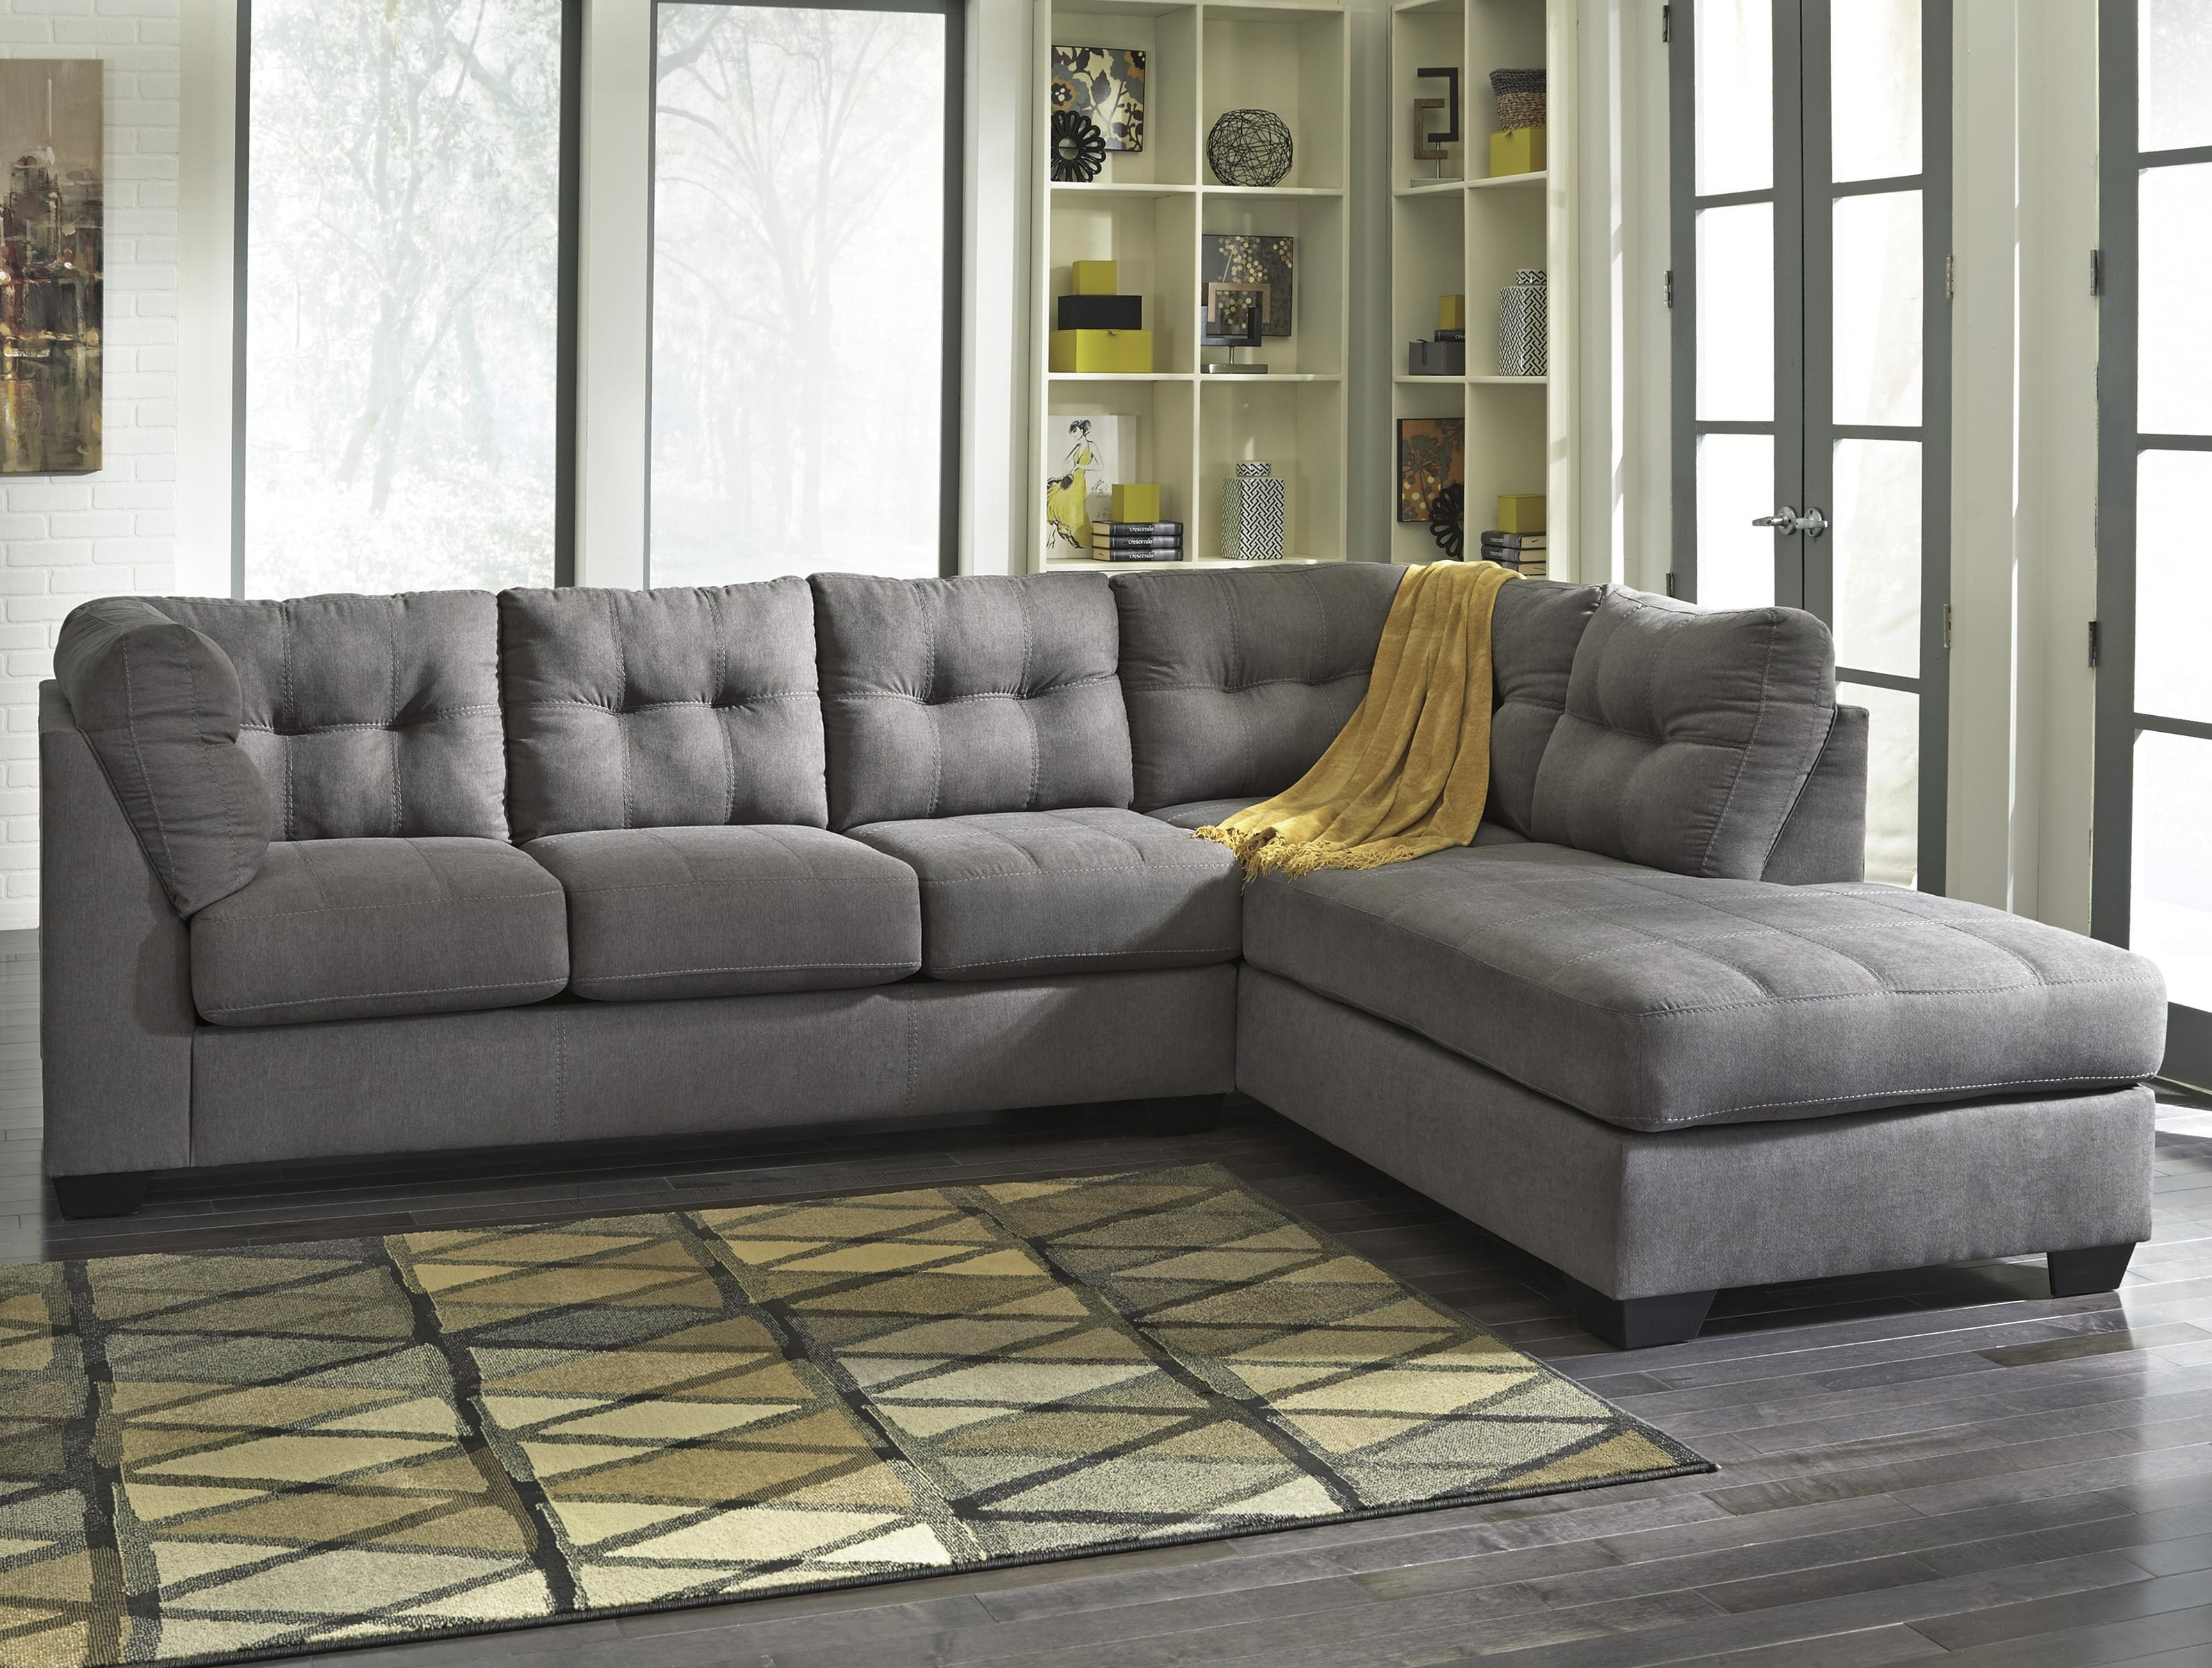 Benchcraft Maier – Charcoal 2 Piece Sectional W/ Sleeper Sofa In Newest Sectional Sofas With 2 Chaises (View 5 of 15)